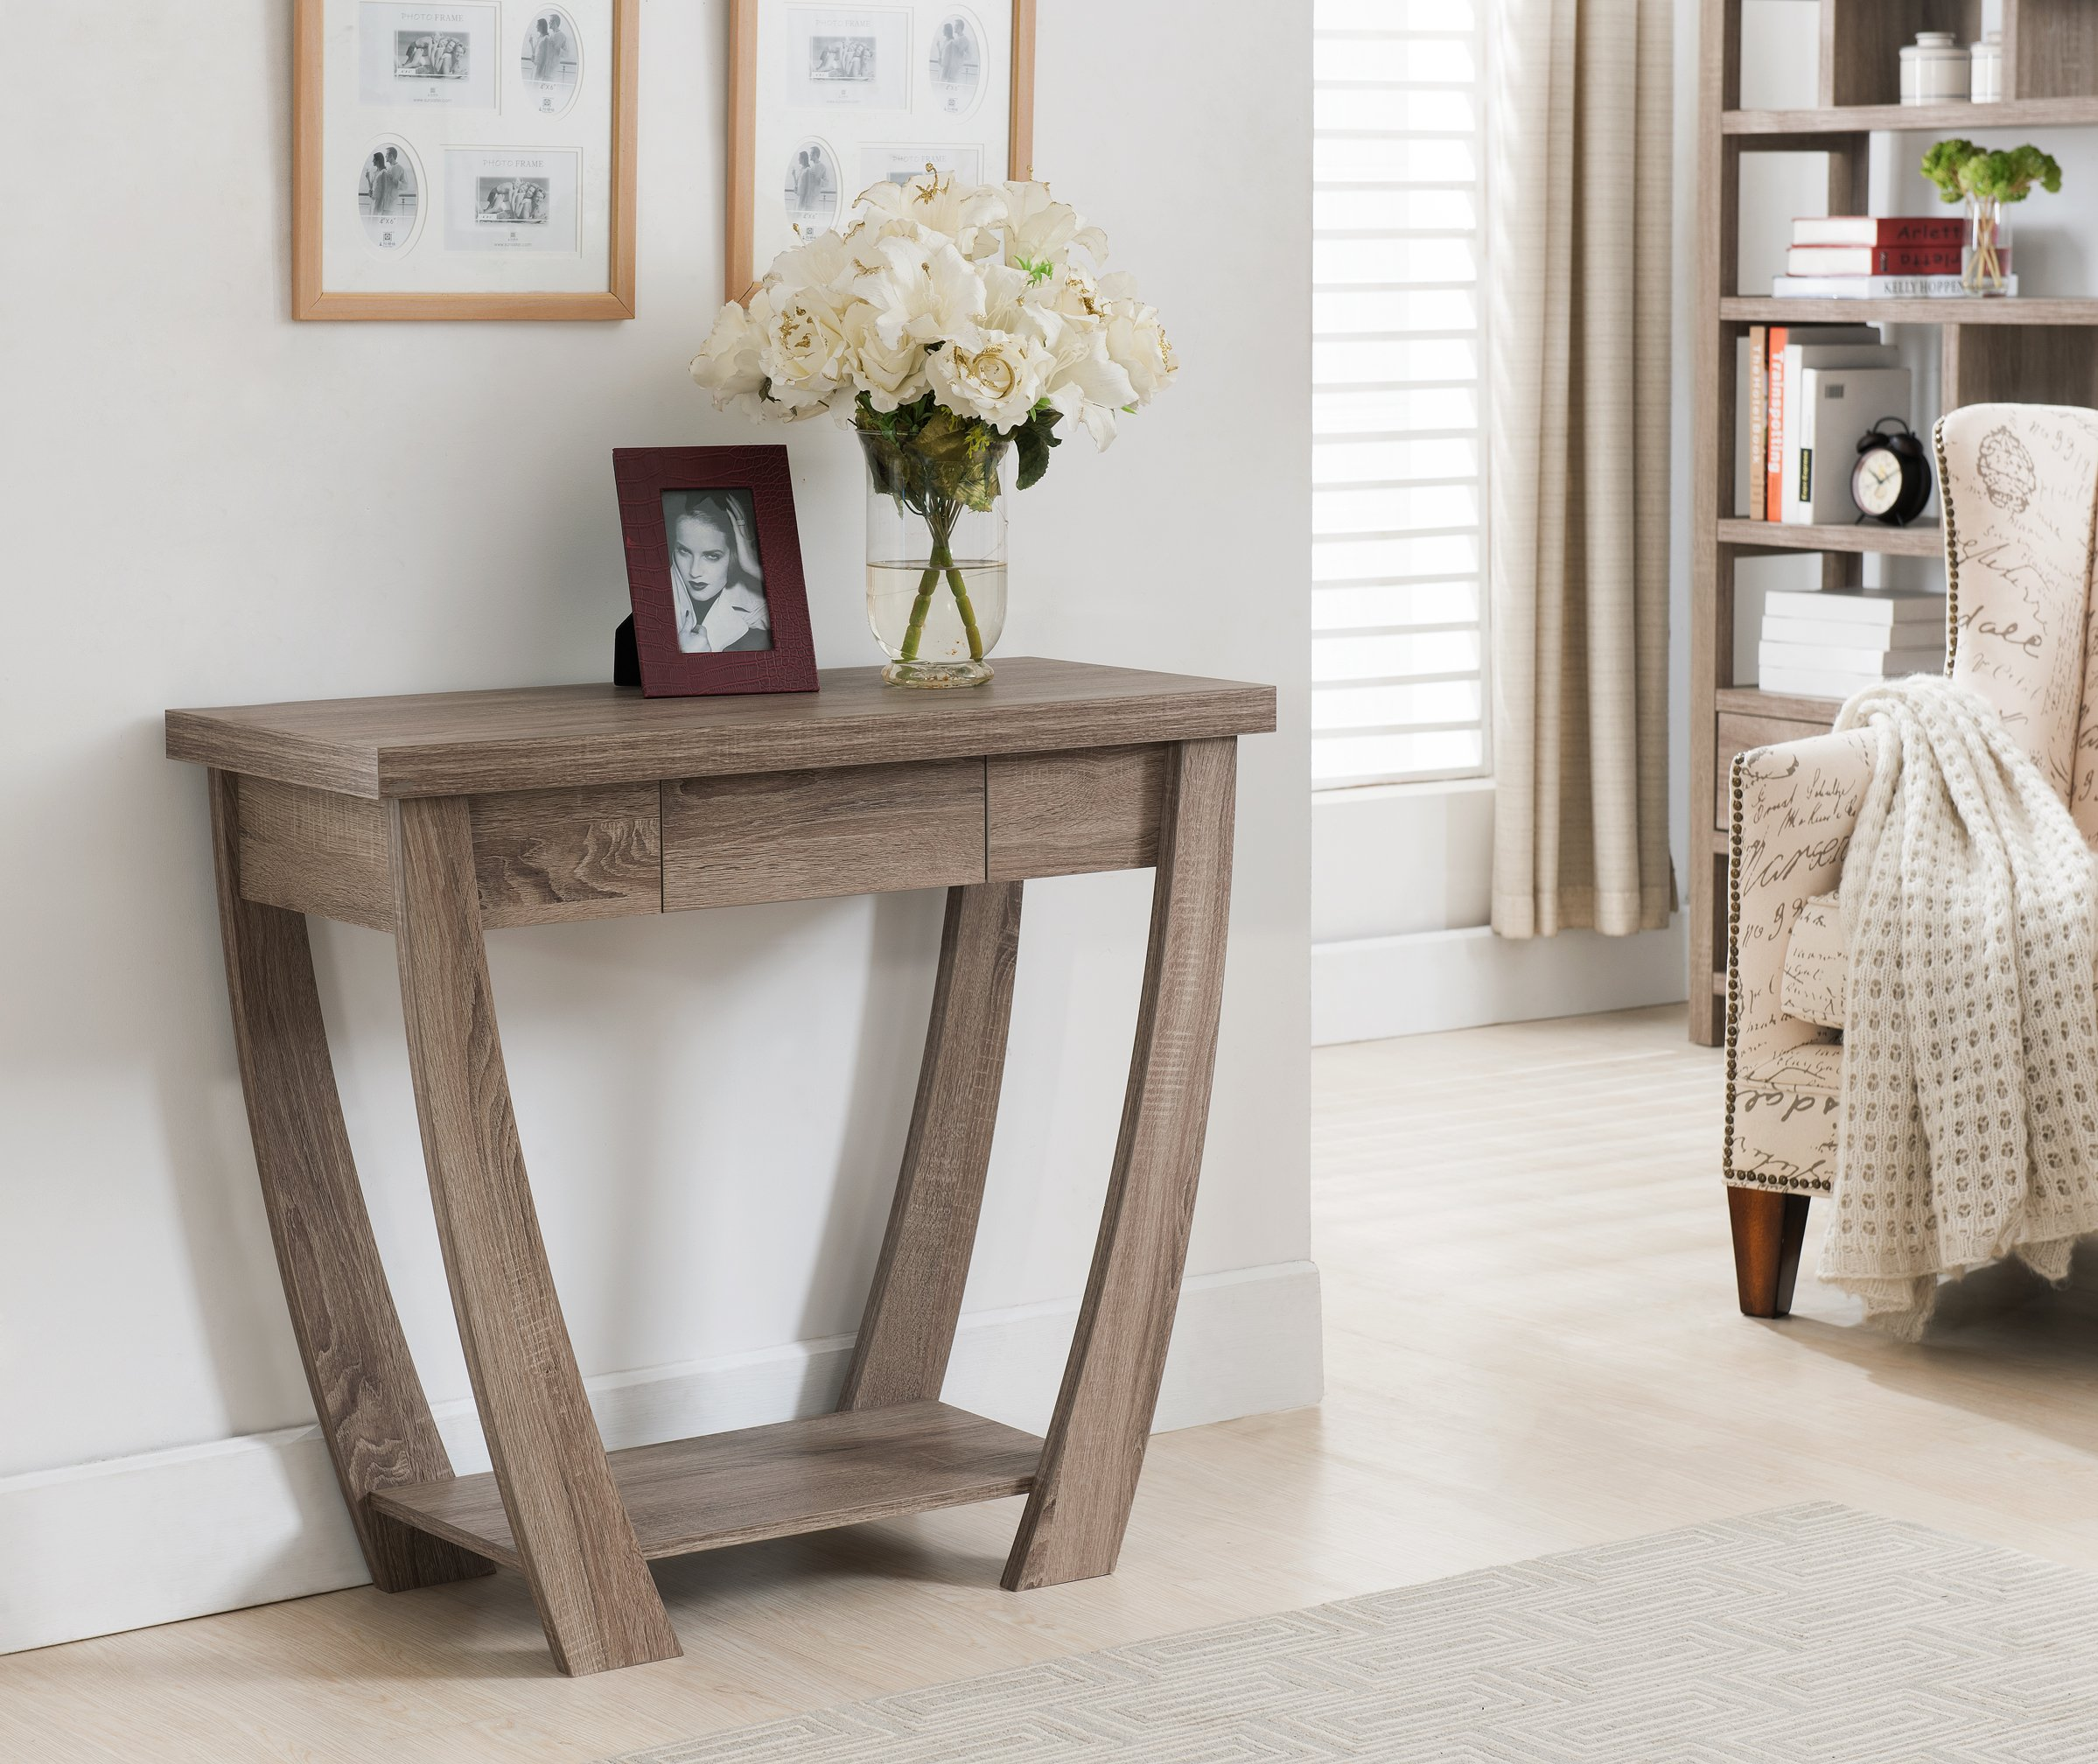 ioHOMES Bond 1 Drawer Console/Sofa Table, Light Oak by HOMES: Inside + Out (Image #2)